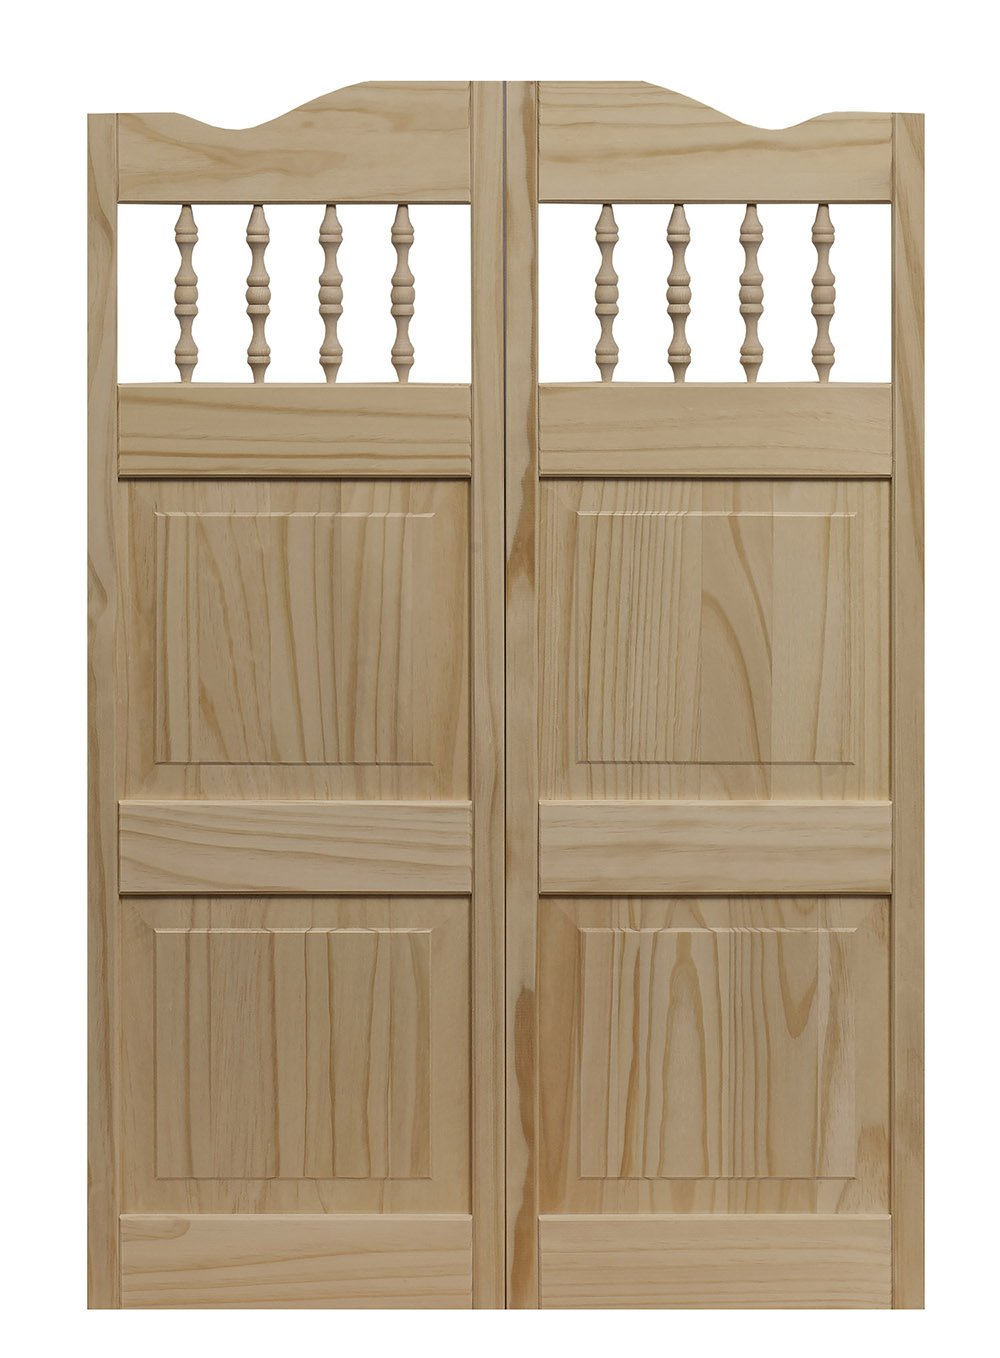 Pinecroft 848642 Carson City Café Interior Swing Wood Door, 36'' x 42'', Unfinished by LTL Home Products